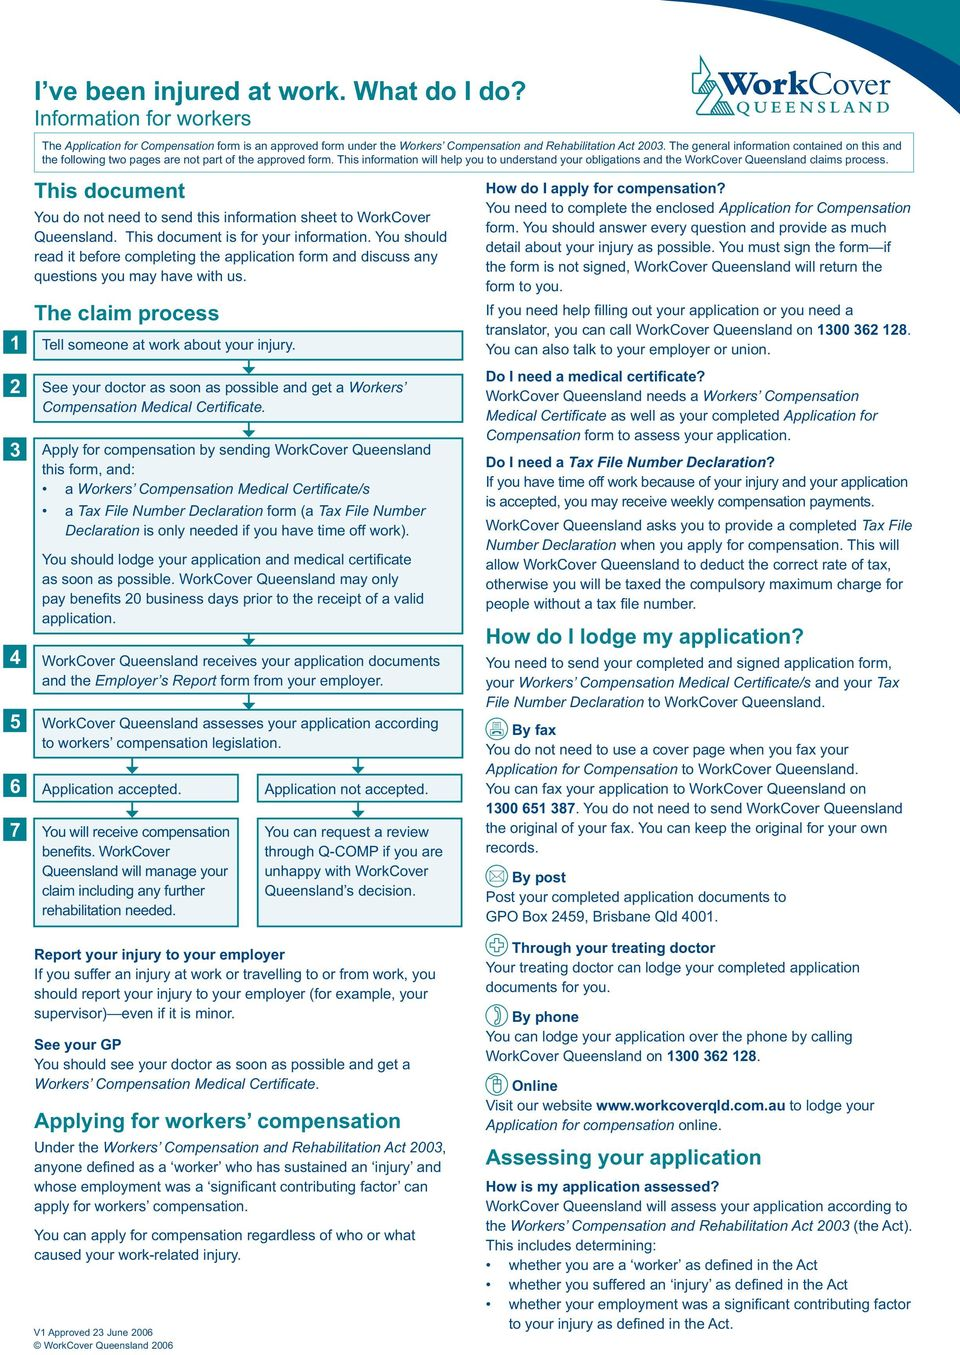 This information will help you to understand your obligations and the WorkCover Queensland claims process.